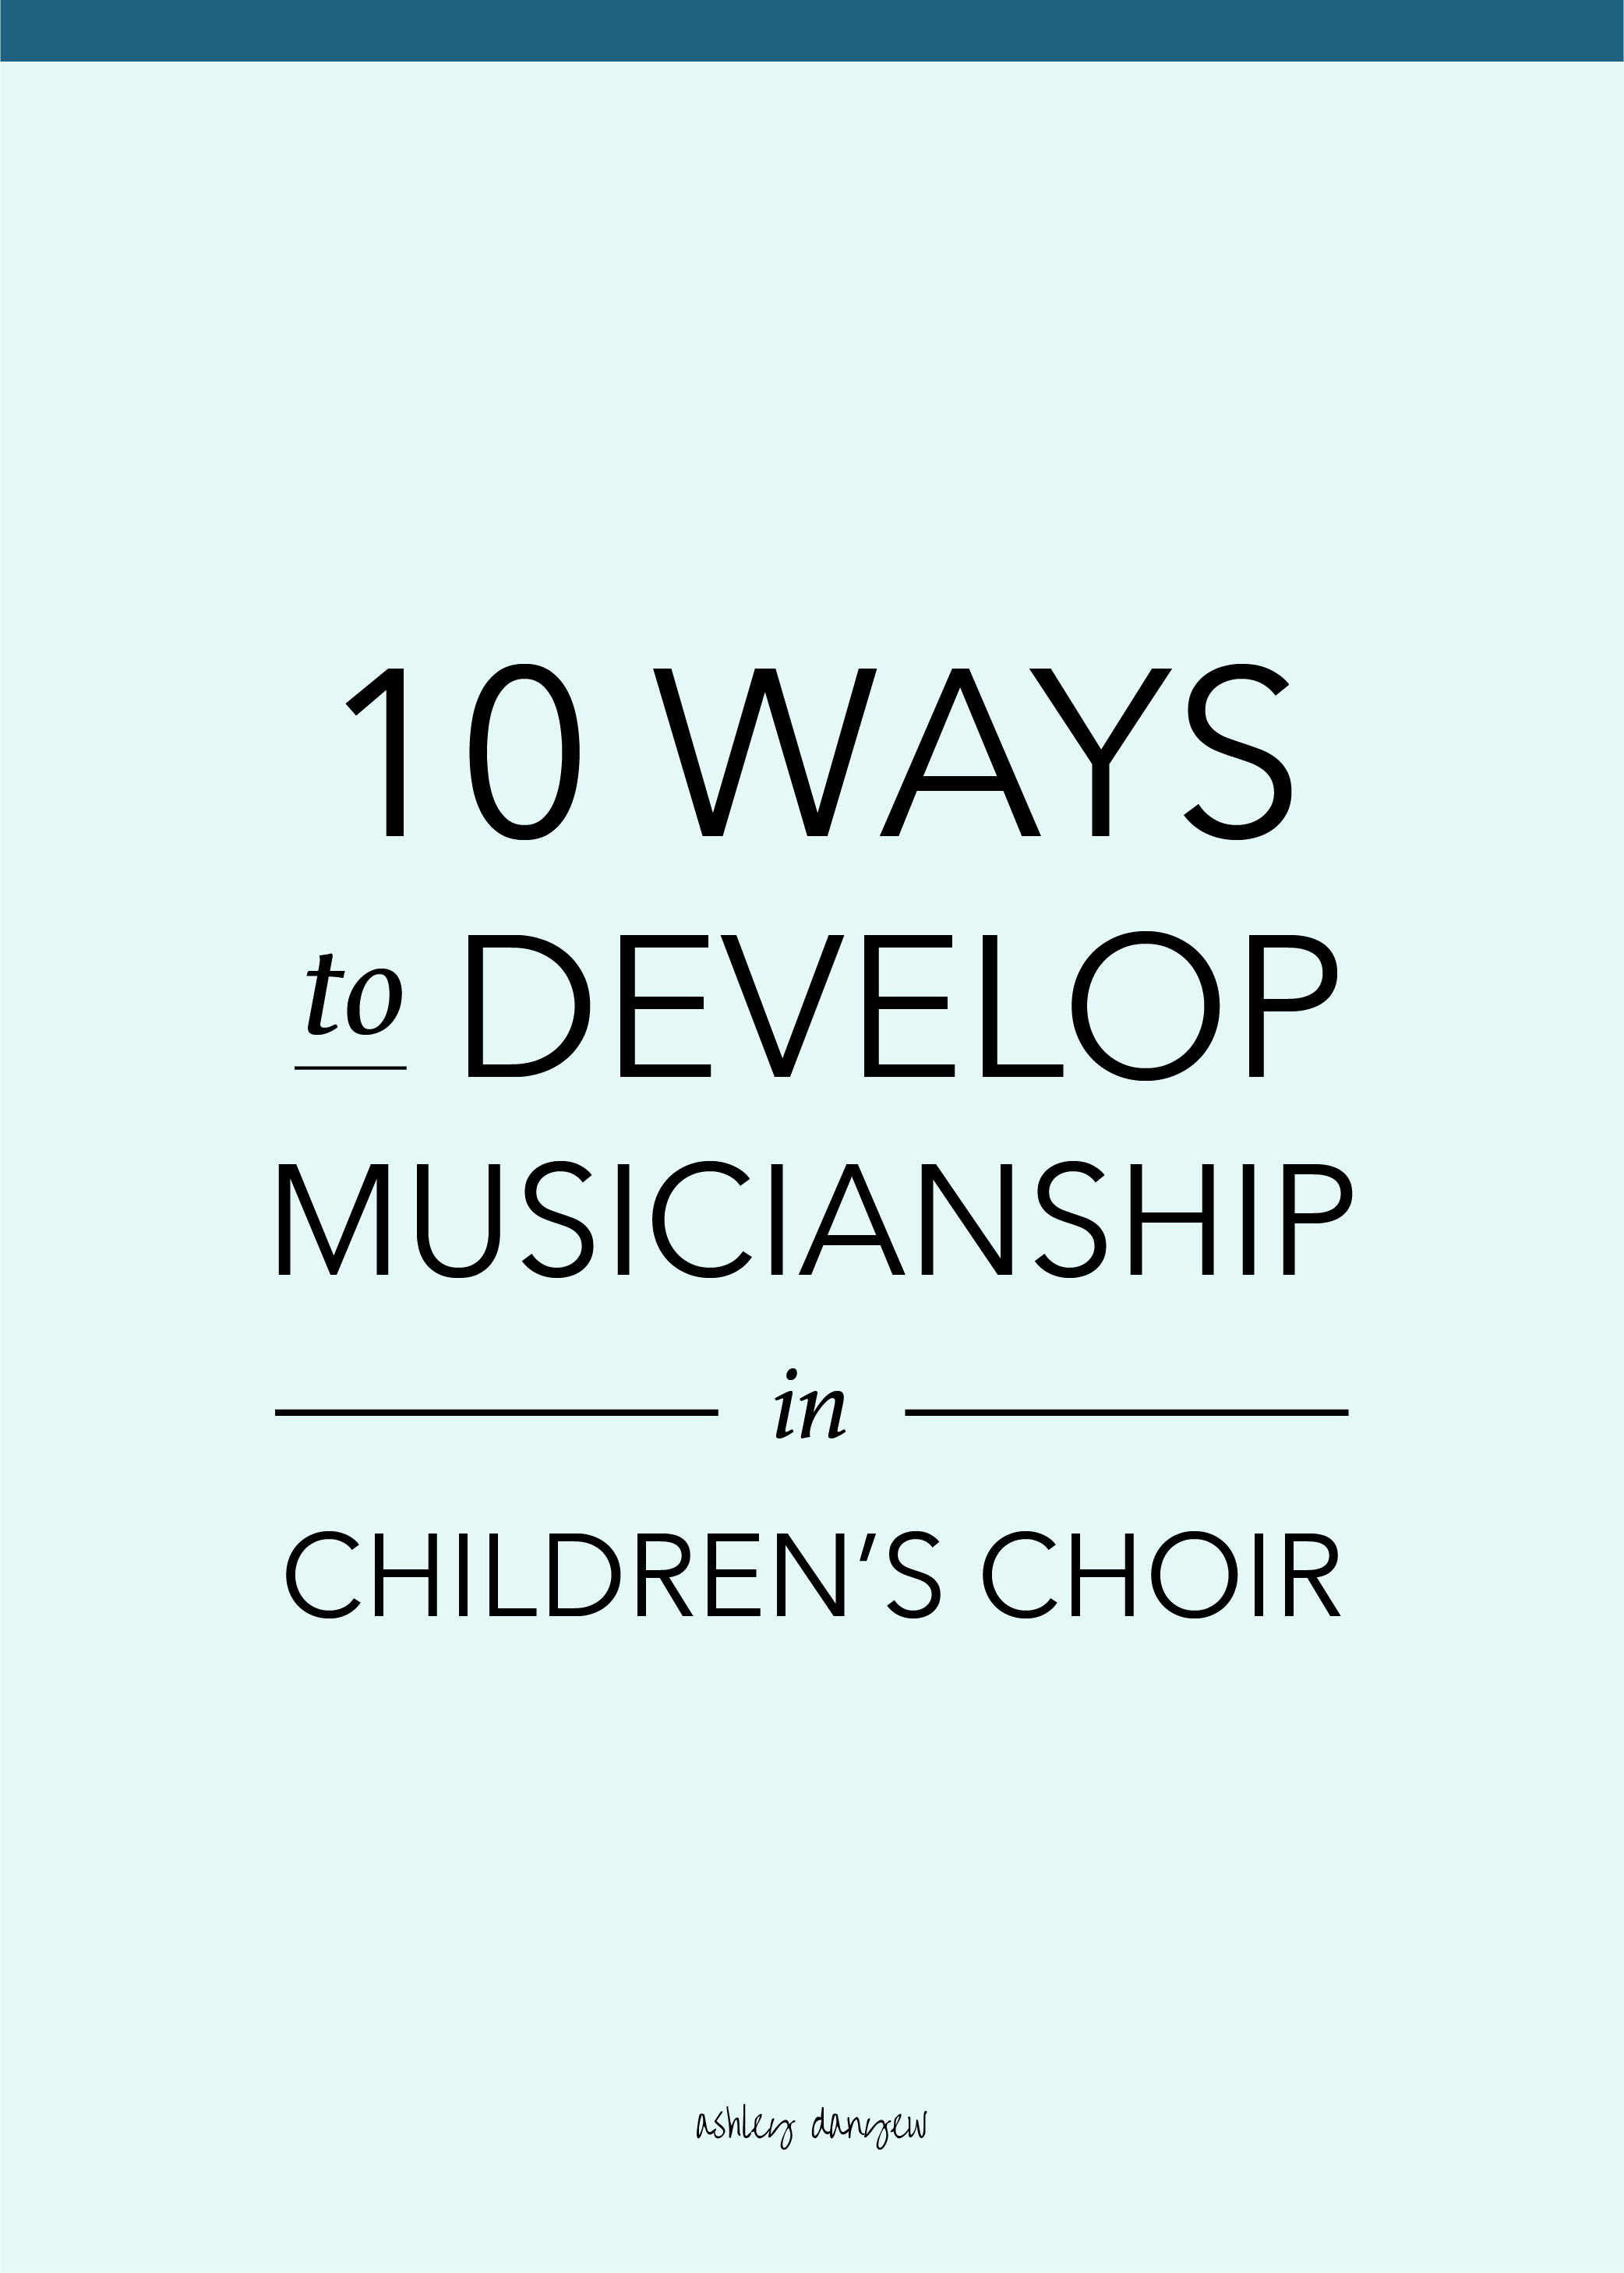 Copy of 10 Ways to Develop Musicianship in Children's Choir